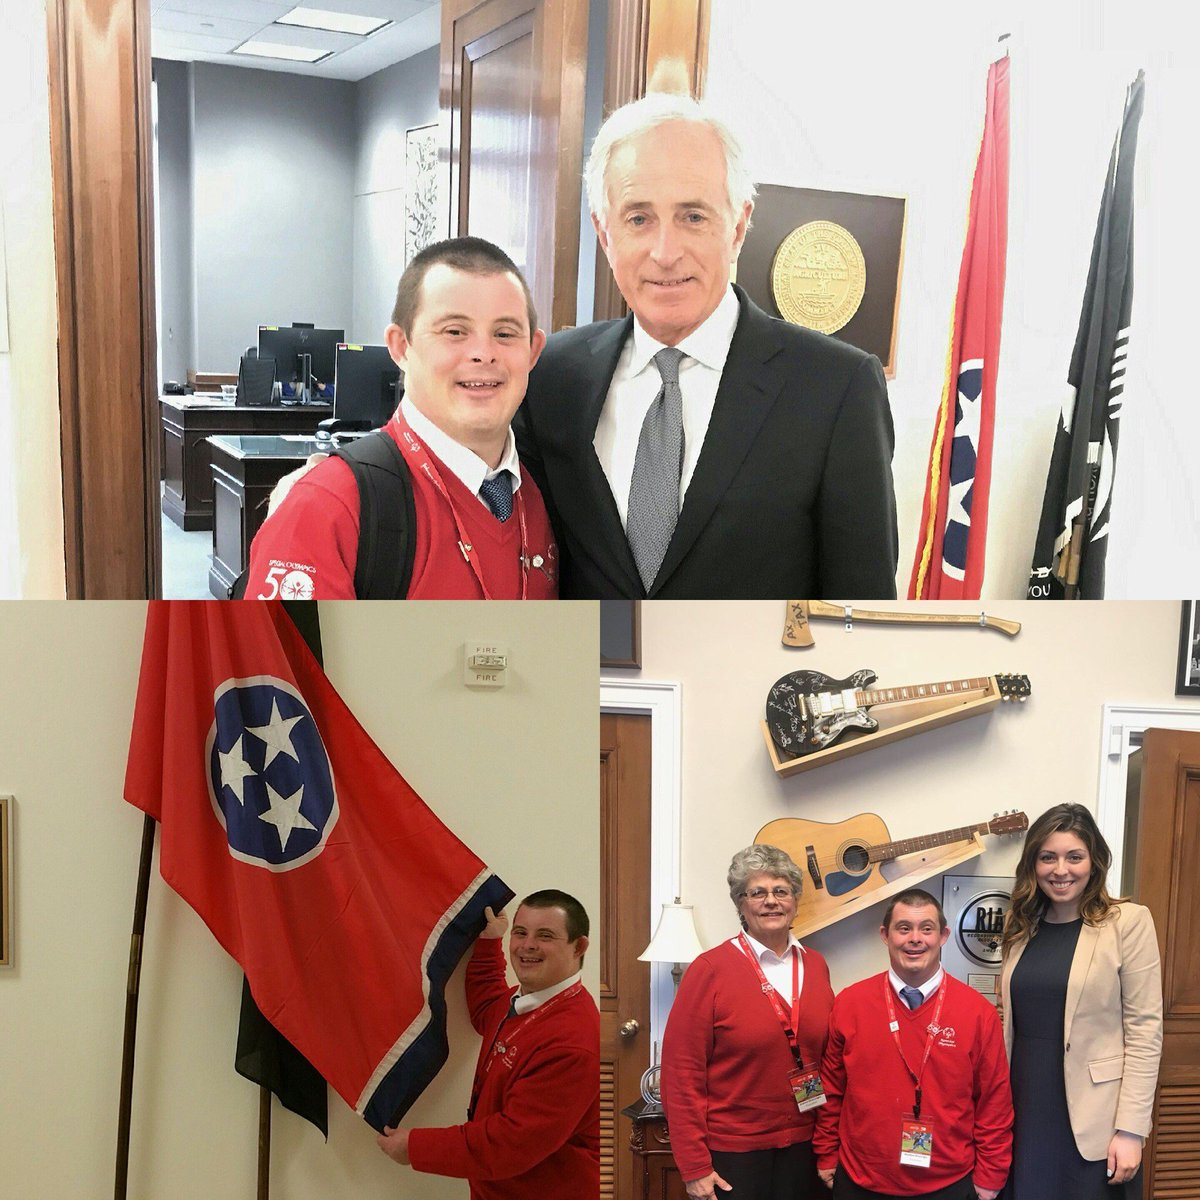 We are grateful for @SOTennessee representatives @SenBobCorker & staffer Melissa Wardell with @MarshaBlackburn for taking time for Matthew Drumright to speak on the work of @SpecialOlympics to understand the importance and power of inclusion! #SOHillDay https://t.co/qaKNAuwLc3